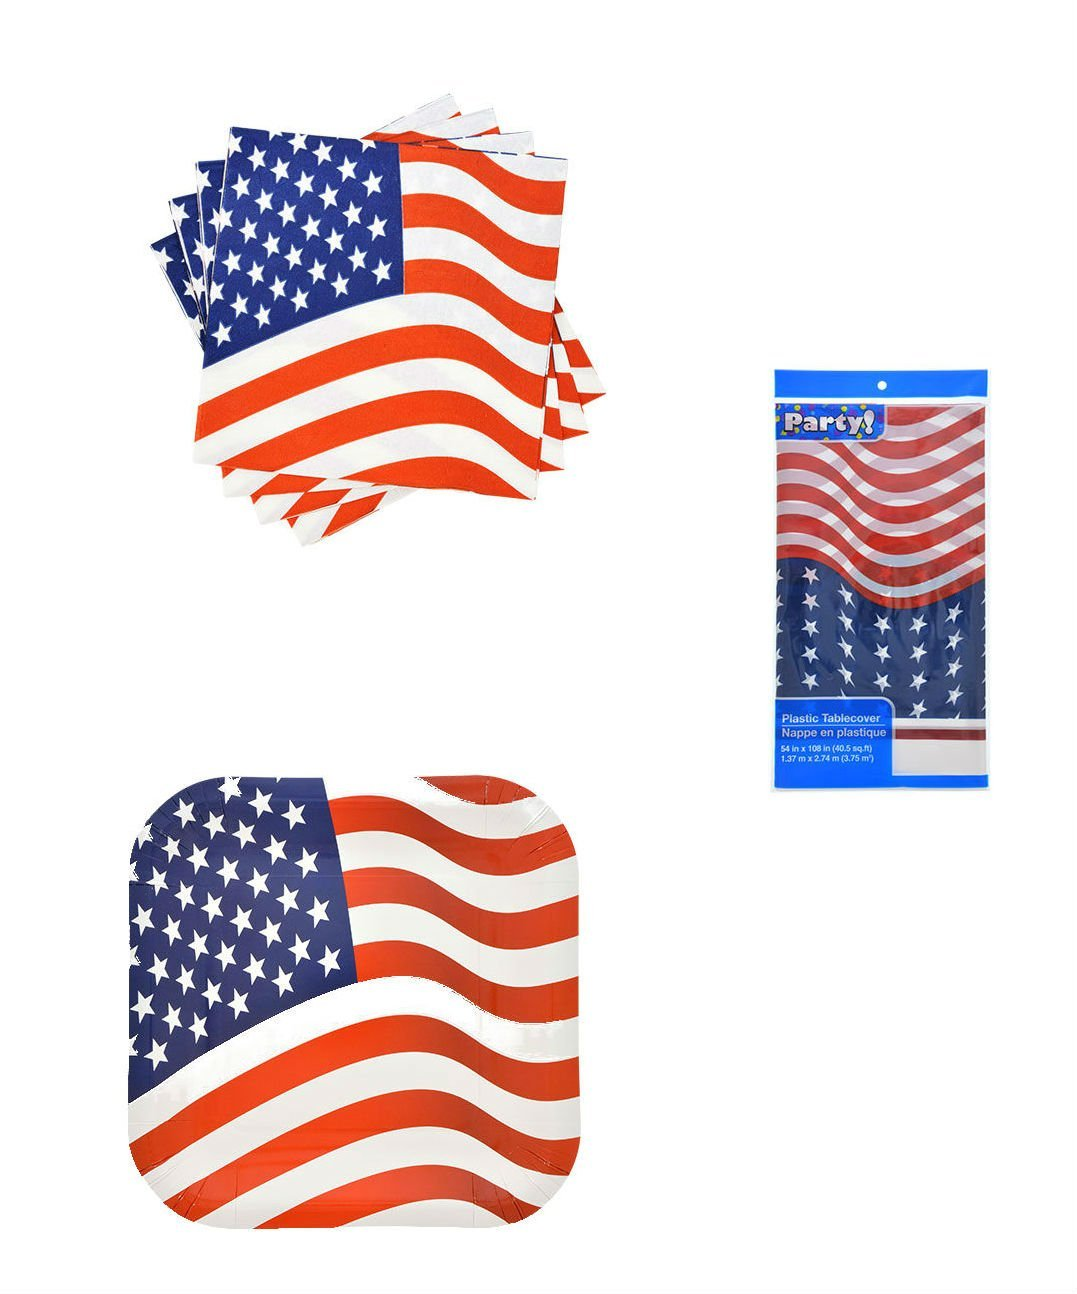 Patriotic American Flag Party Supplies Bundle Includes Paper Plates and Napkins for 8 Guests in a Freedoms Flag Design